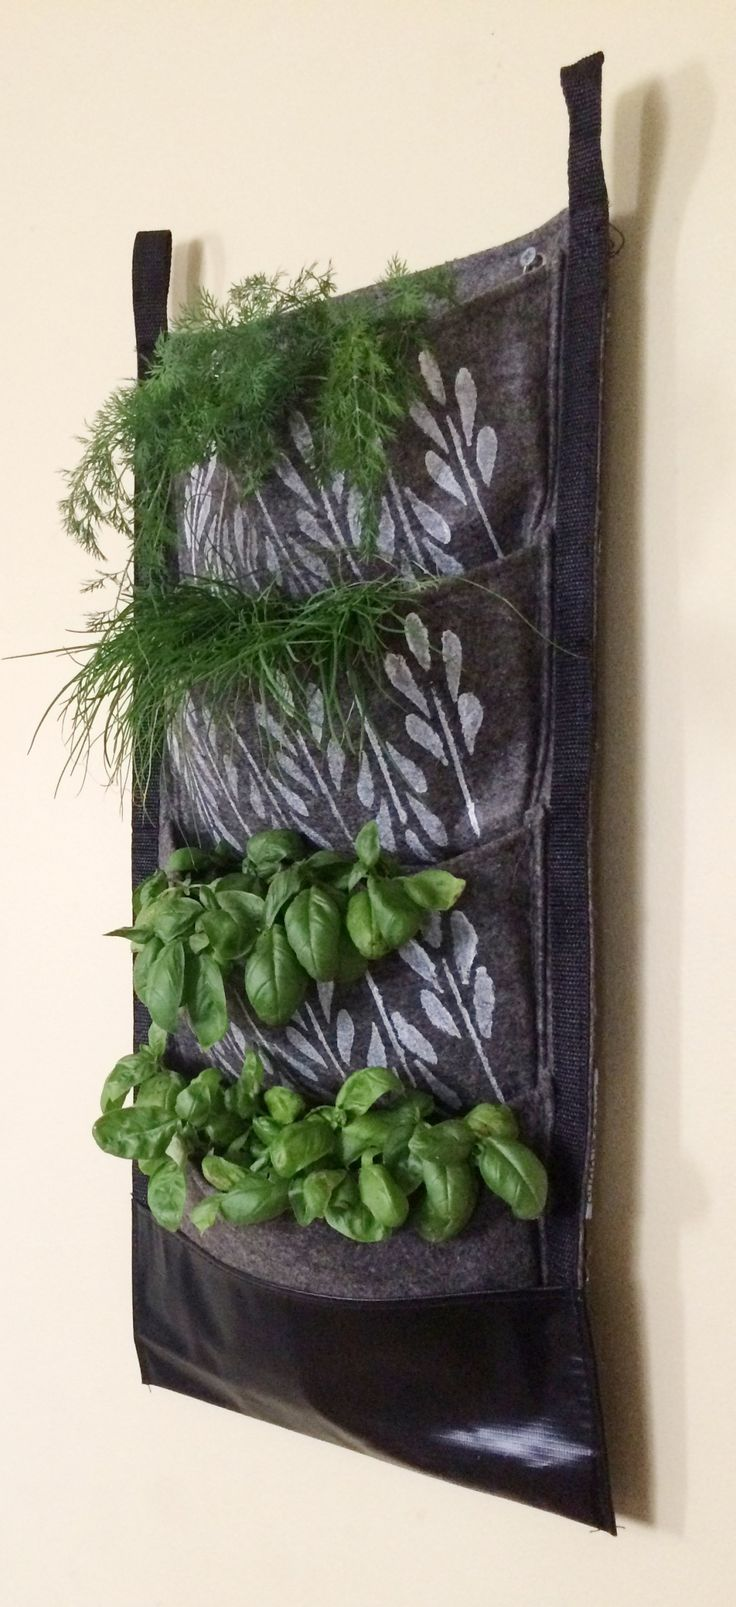 Did you know that having a flourishing garden is an option no matter where you live? Pocket planters are a great small space solution, and allow you to have the garden you want without having to sacrifice the space. Plus, they're beautiful wall décor! Click in to read more.